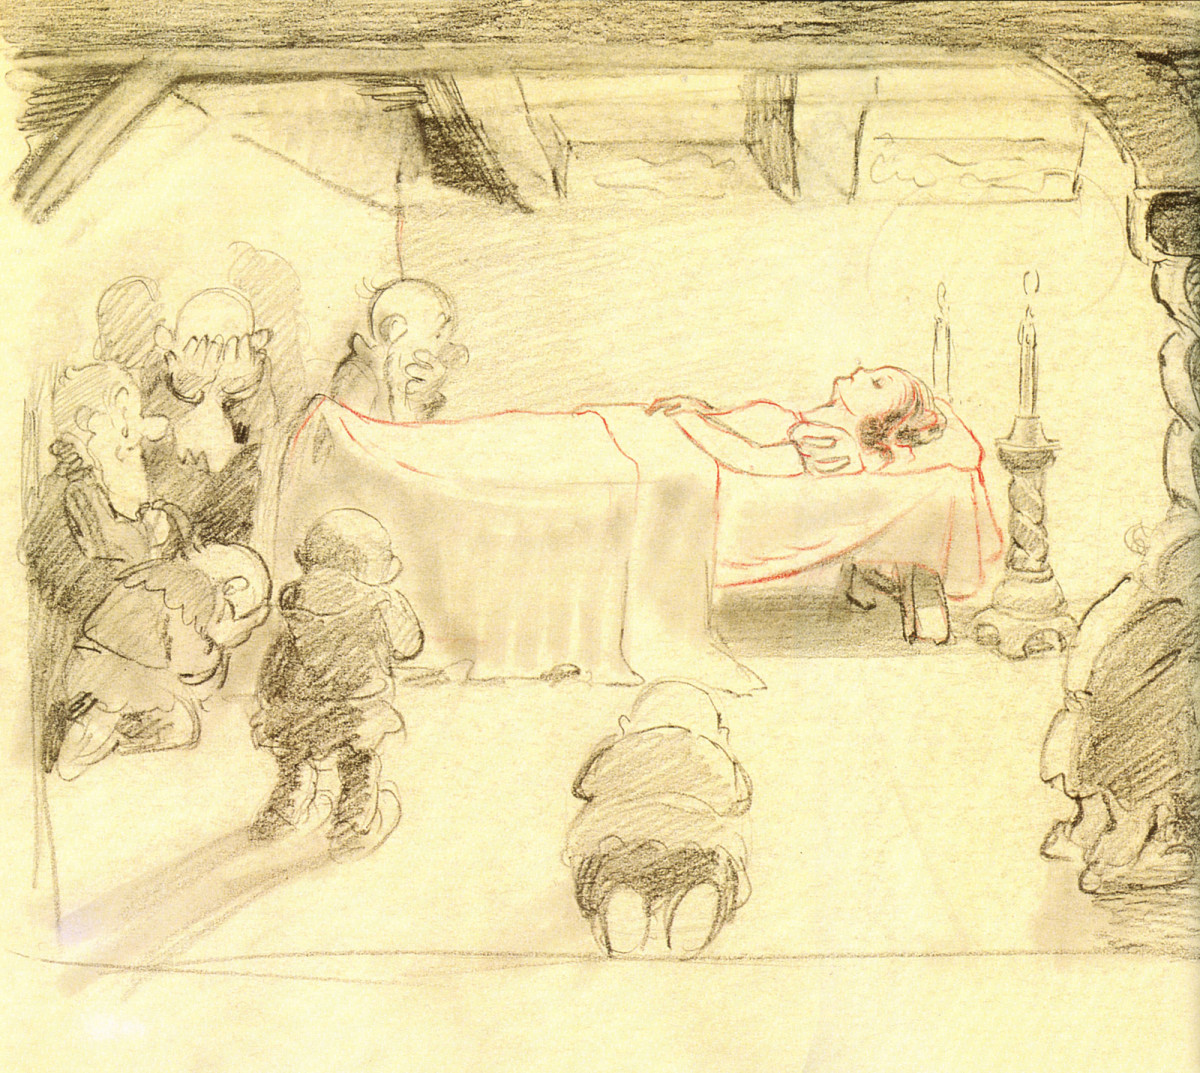 """The Sleeping Death"" sketched scene."